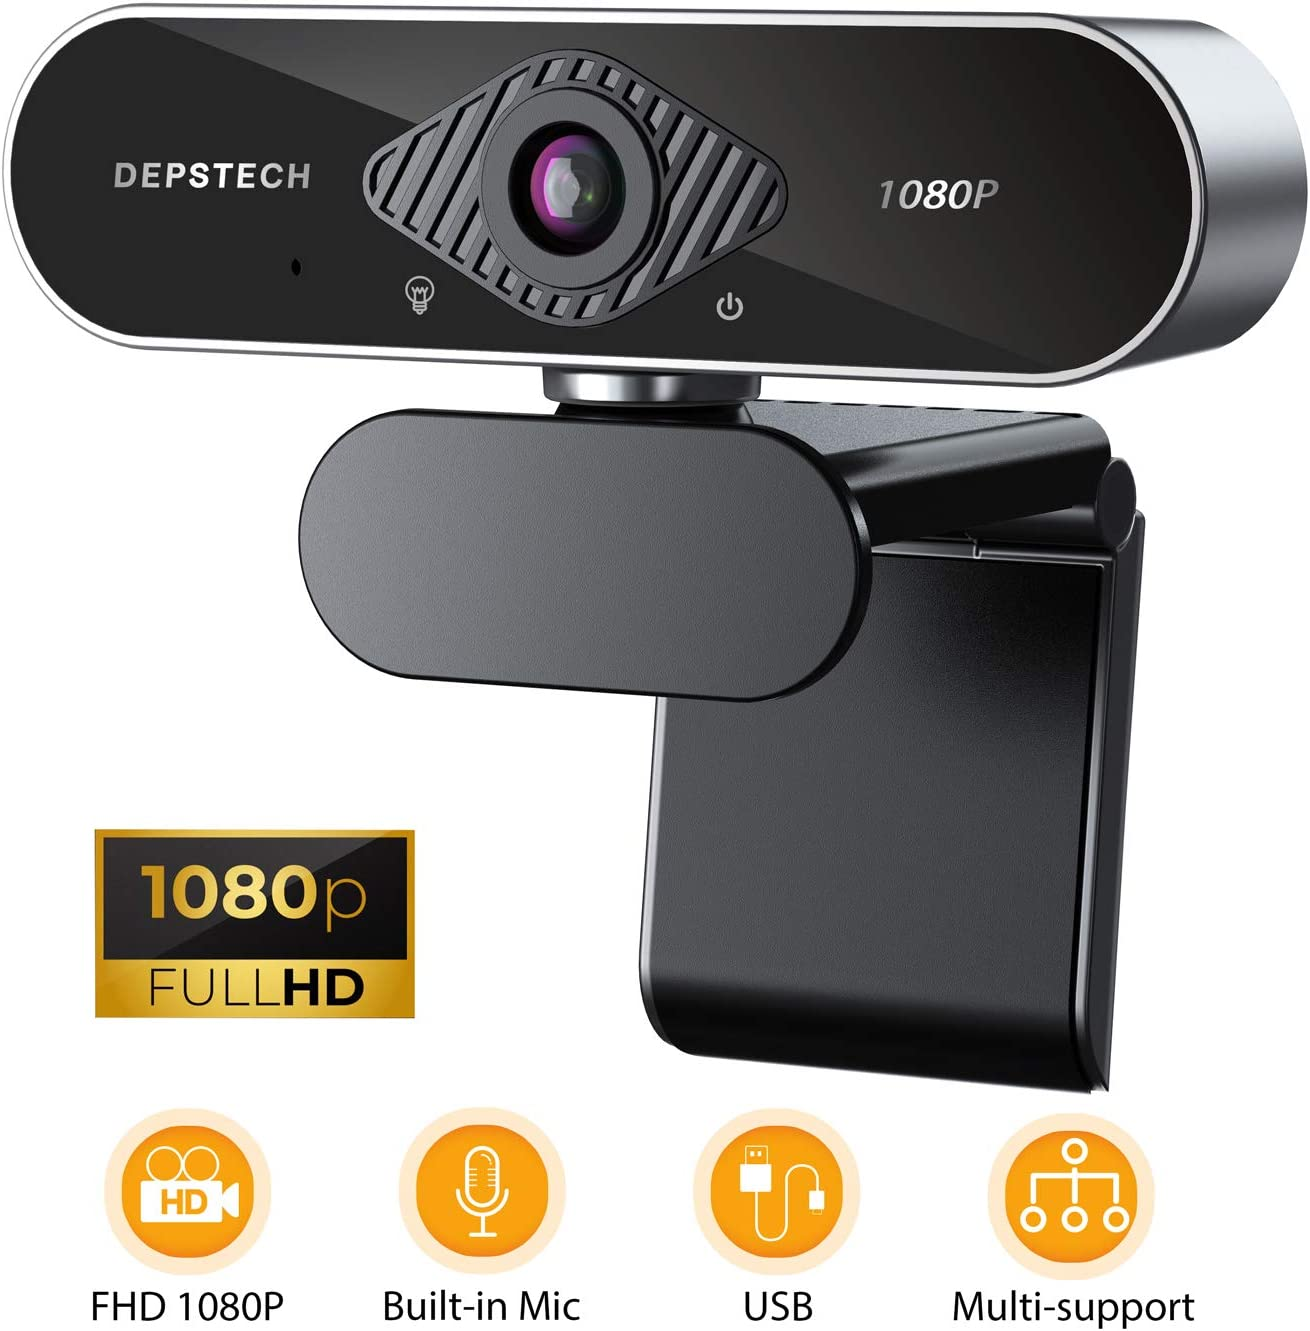 HD 1080P Webcam with Microphone, DEPSTECH USB Webcam with Auto Light Correction for Desktop/Laptop, Streaming Computer Web Camera for Video Conferencing, Teaching, Streaming, and Gaming